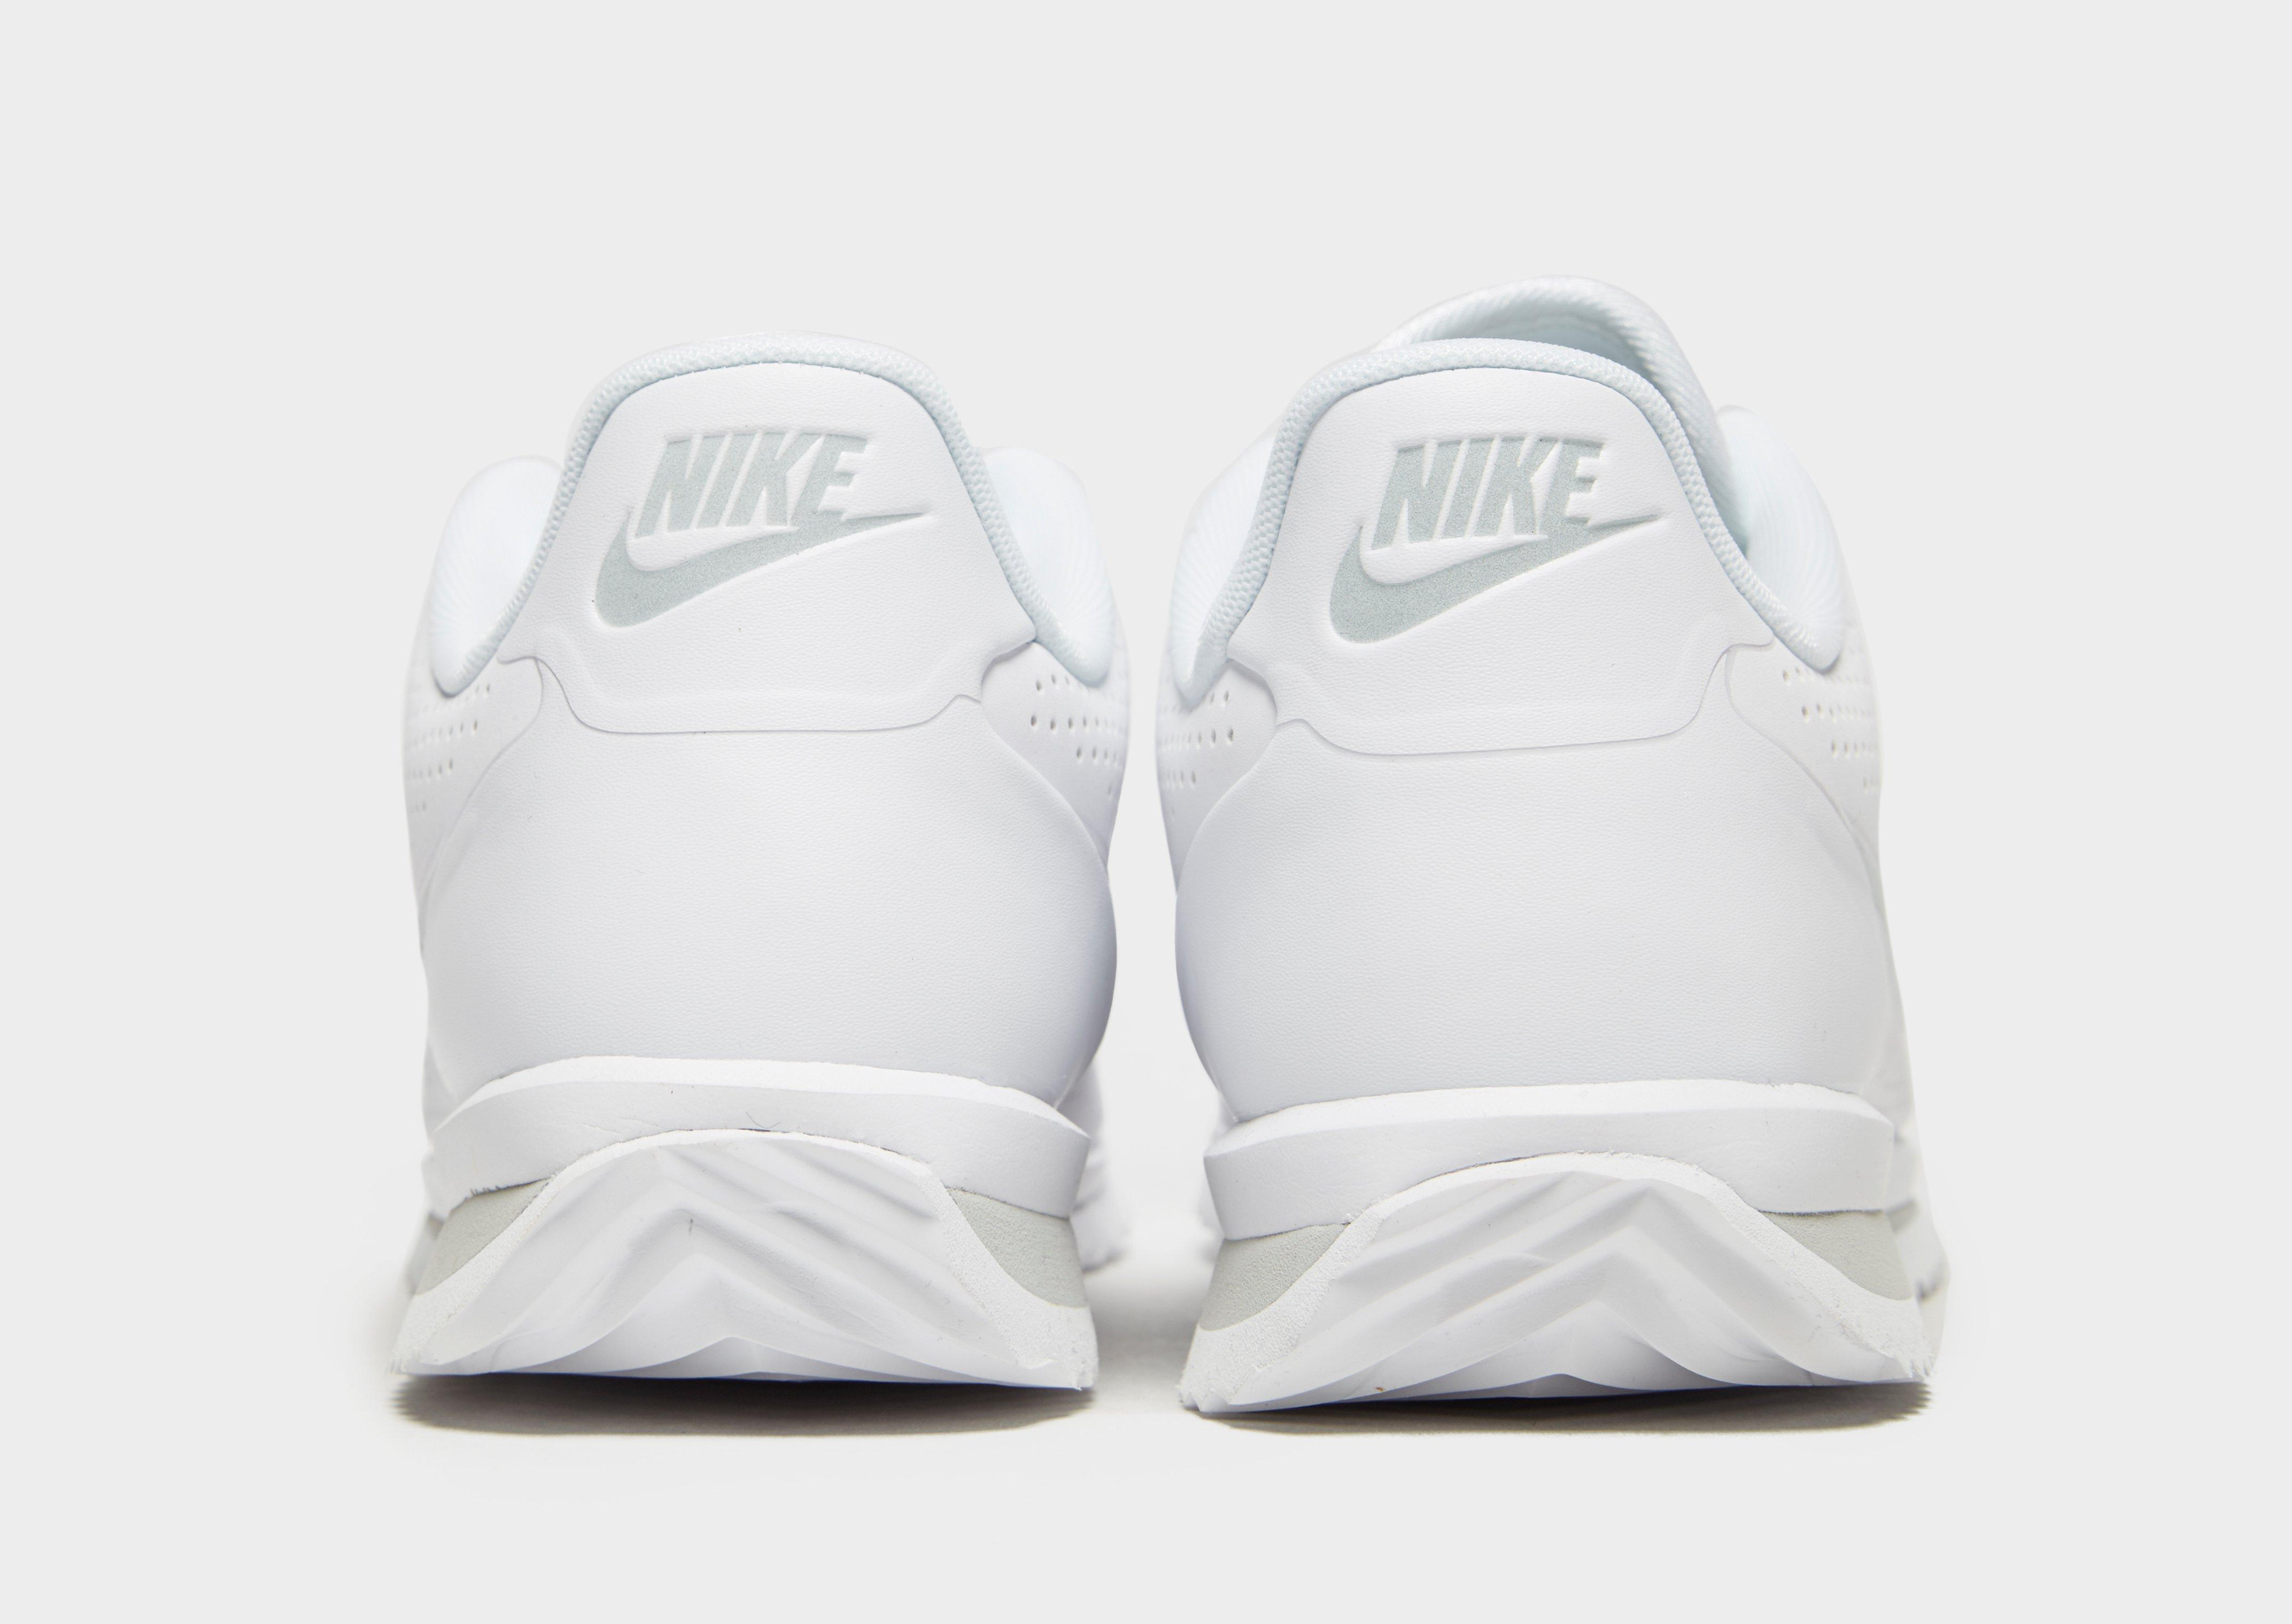 Desviación Experto impermeable  nike cortez jd sports malaysia cheap nike shoes online